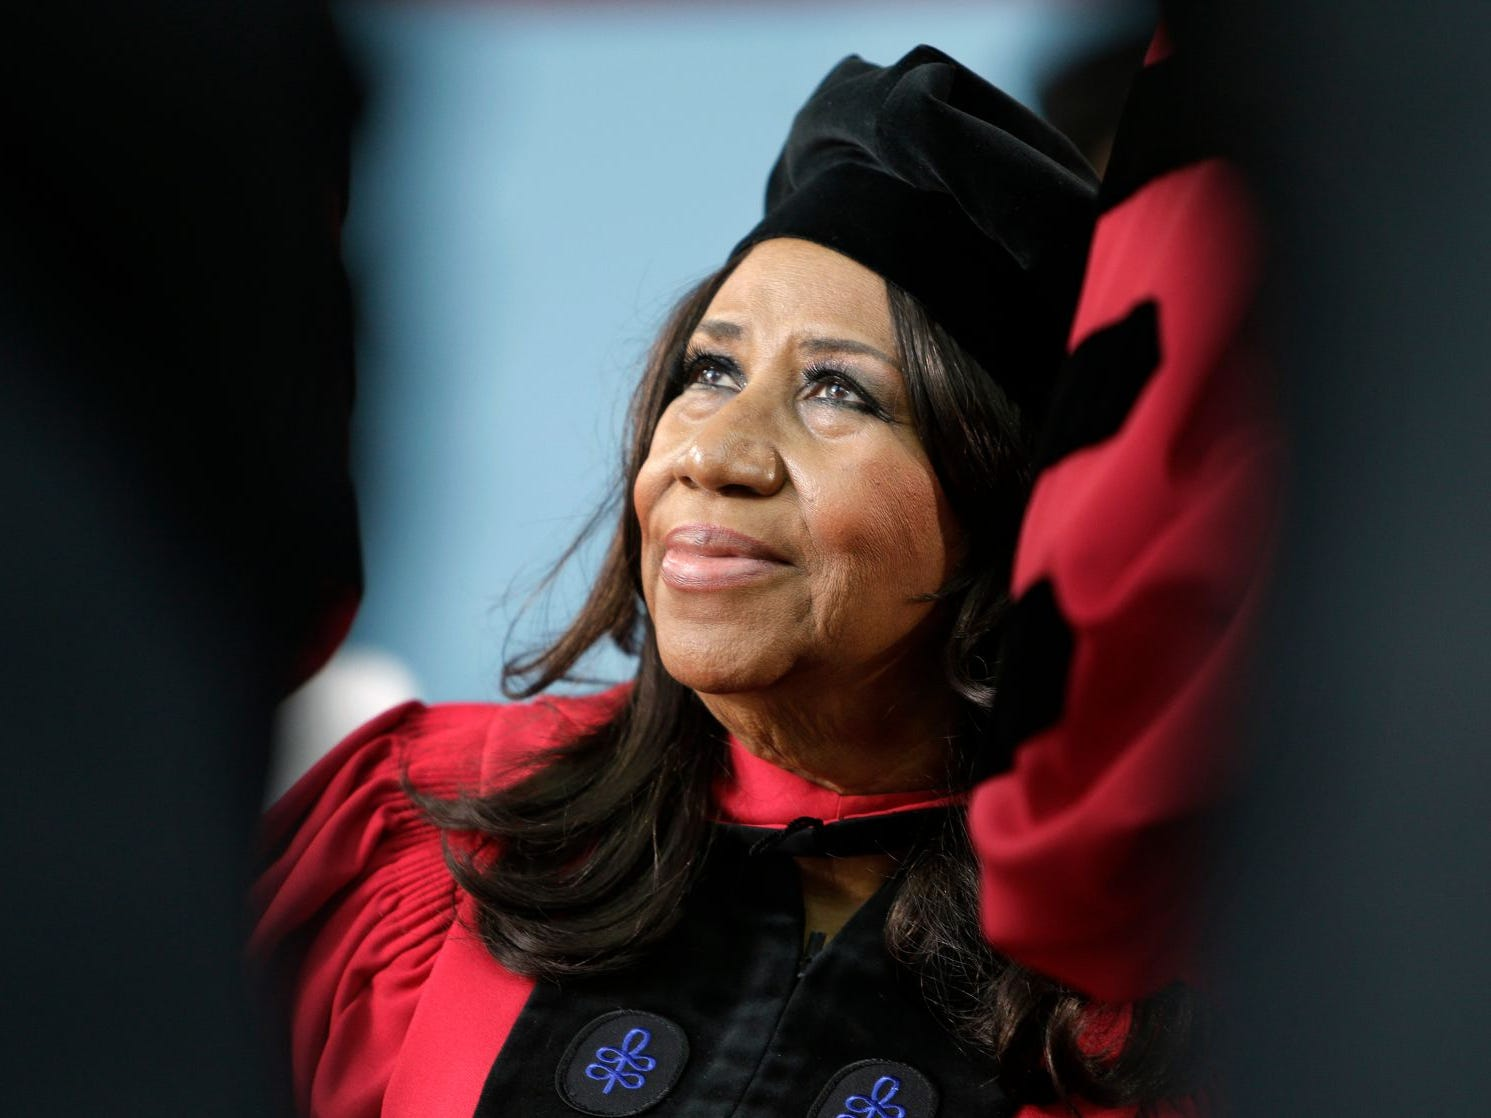 "In a Thursday, May 29, 2014 file photo, singer Aretha Franklin looks up while seated on stage during Harvard University commencement ceremonies, in Cambridge, Mass., where she was presented with an honorary Doctor of Arts degree. Franklin has some harsh words for a New York server at a at a Johnny Rockets restaurant in Lewiston near Buffalo who told the Queen of Soul she wasn't allowed to eat her takeout inside the restaurant. A spokesman for Franklin says on Tuesday, July 22, Franklin ordered a hamburger after performing a sold-out show. But he says the server screamed at Franklin, saying she couldn't sit down to eat because she had ordered takeout. A Johnny Rockets spokeswoman says the franchise owner is sorry for the actions of ""a new and very young employee."""